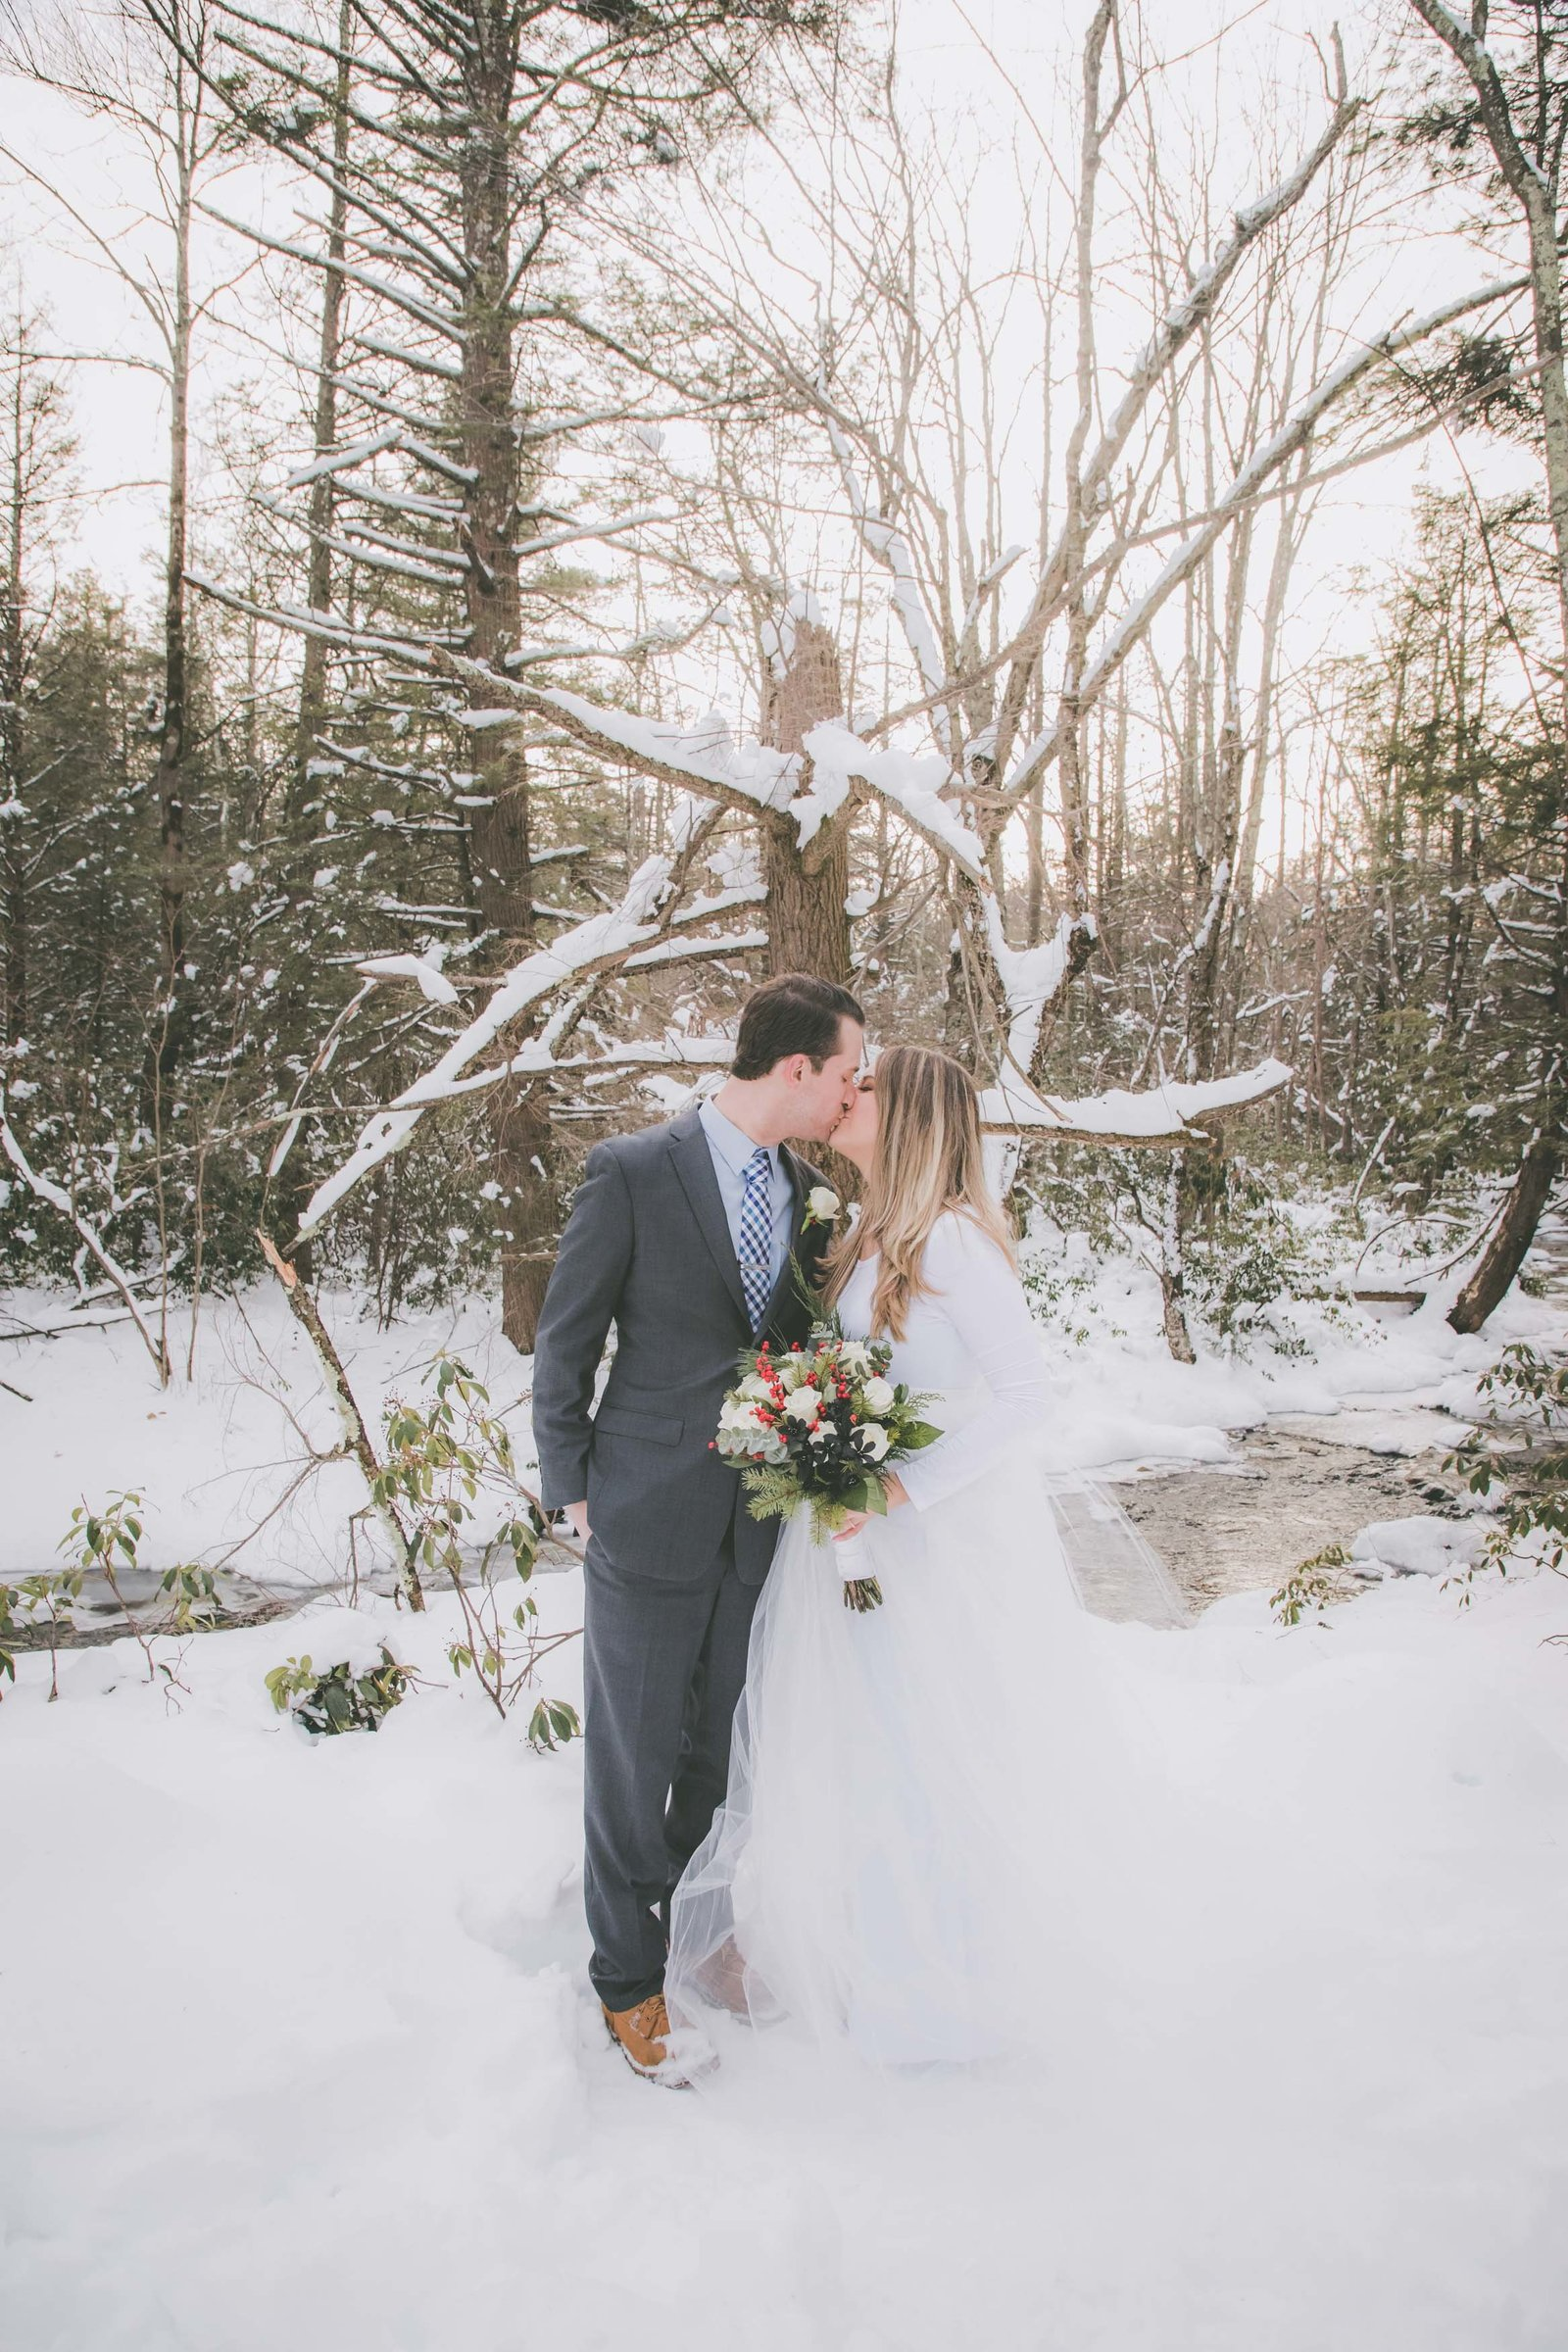 Bride and groom kiss among snow covered trees and ground.